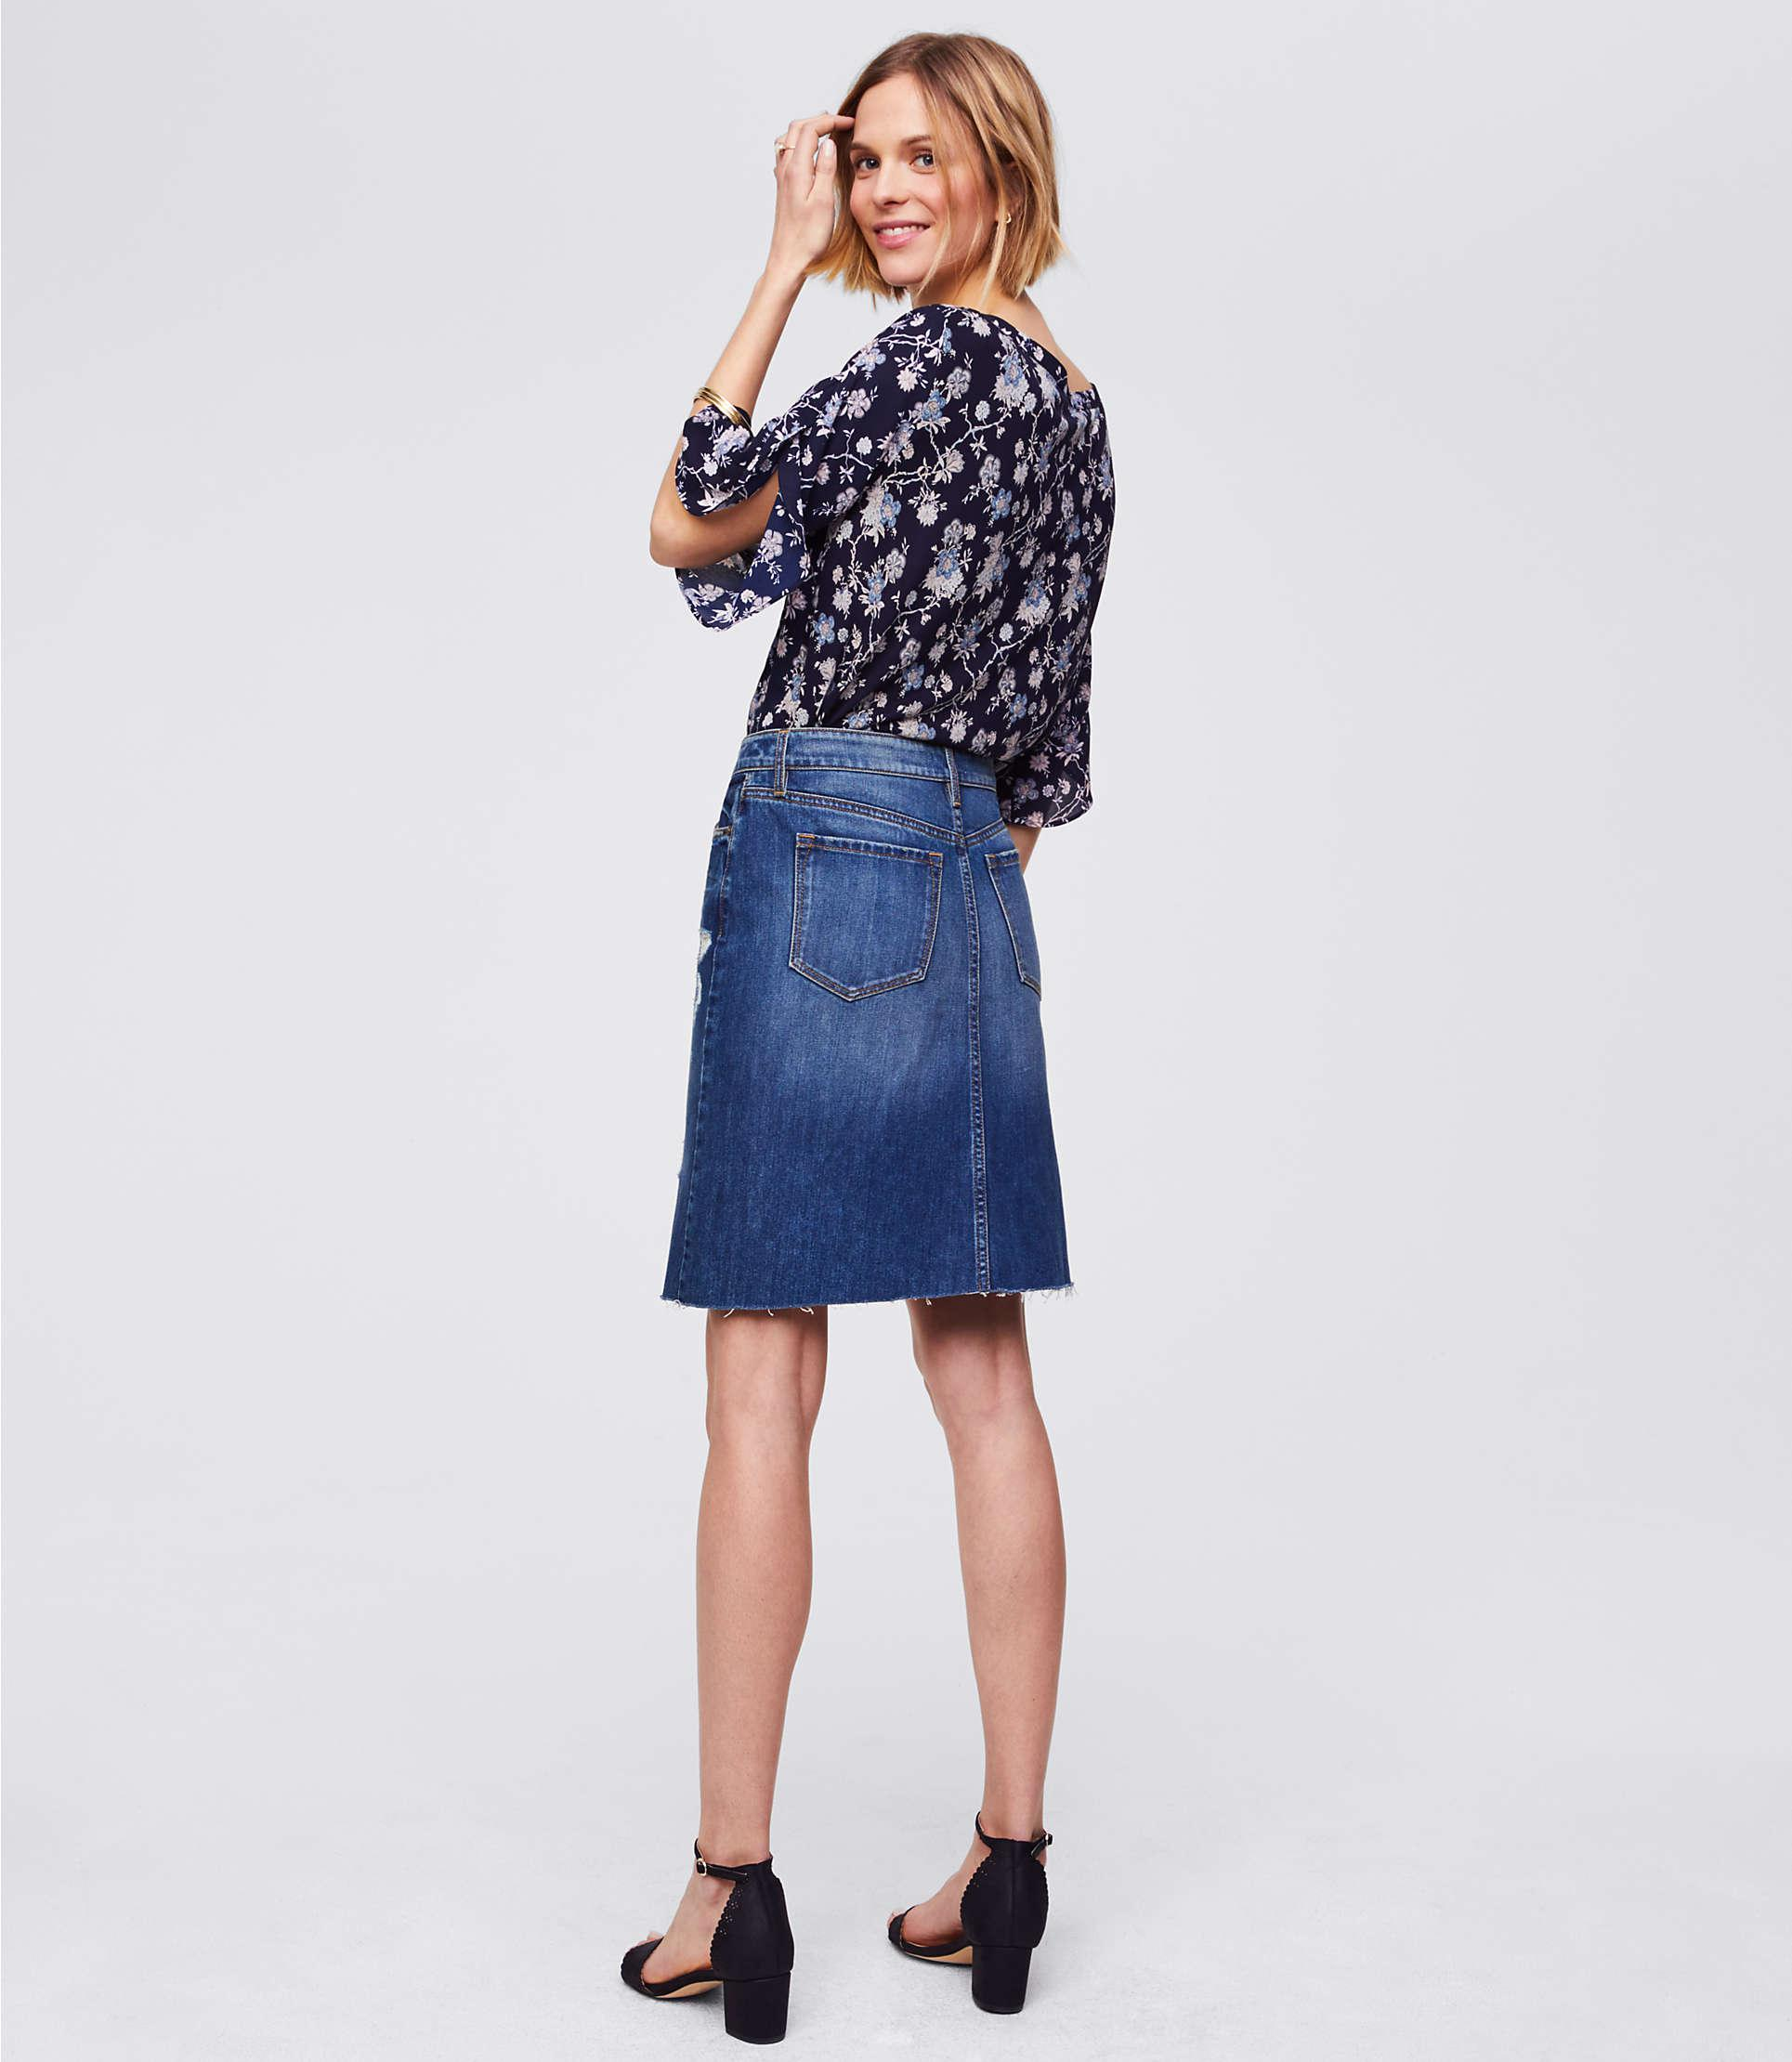 dbfe81307f Gallery. Previously sold at: LOFT · Women's Denim Skirts